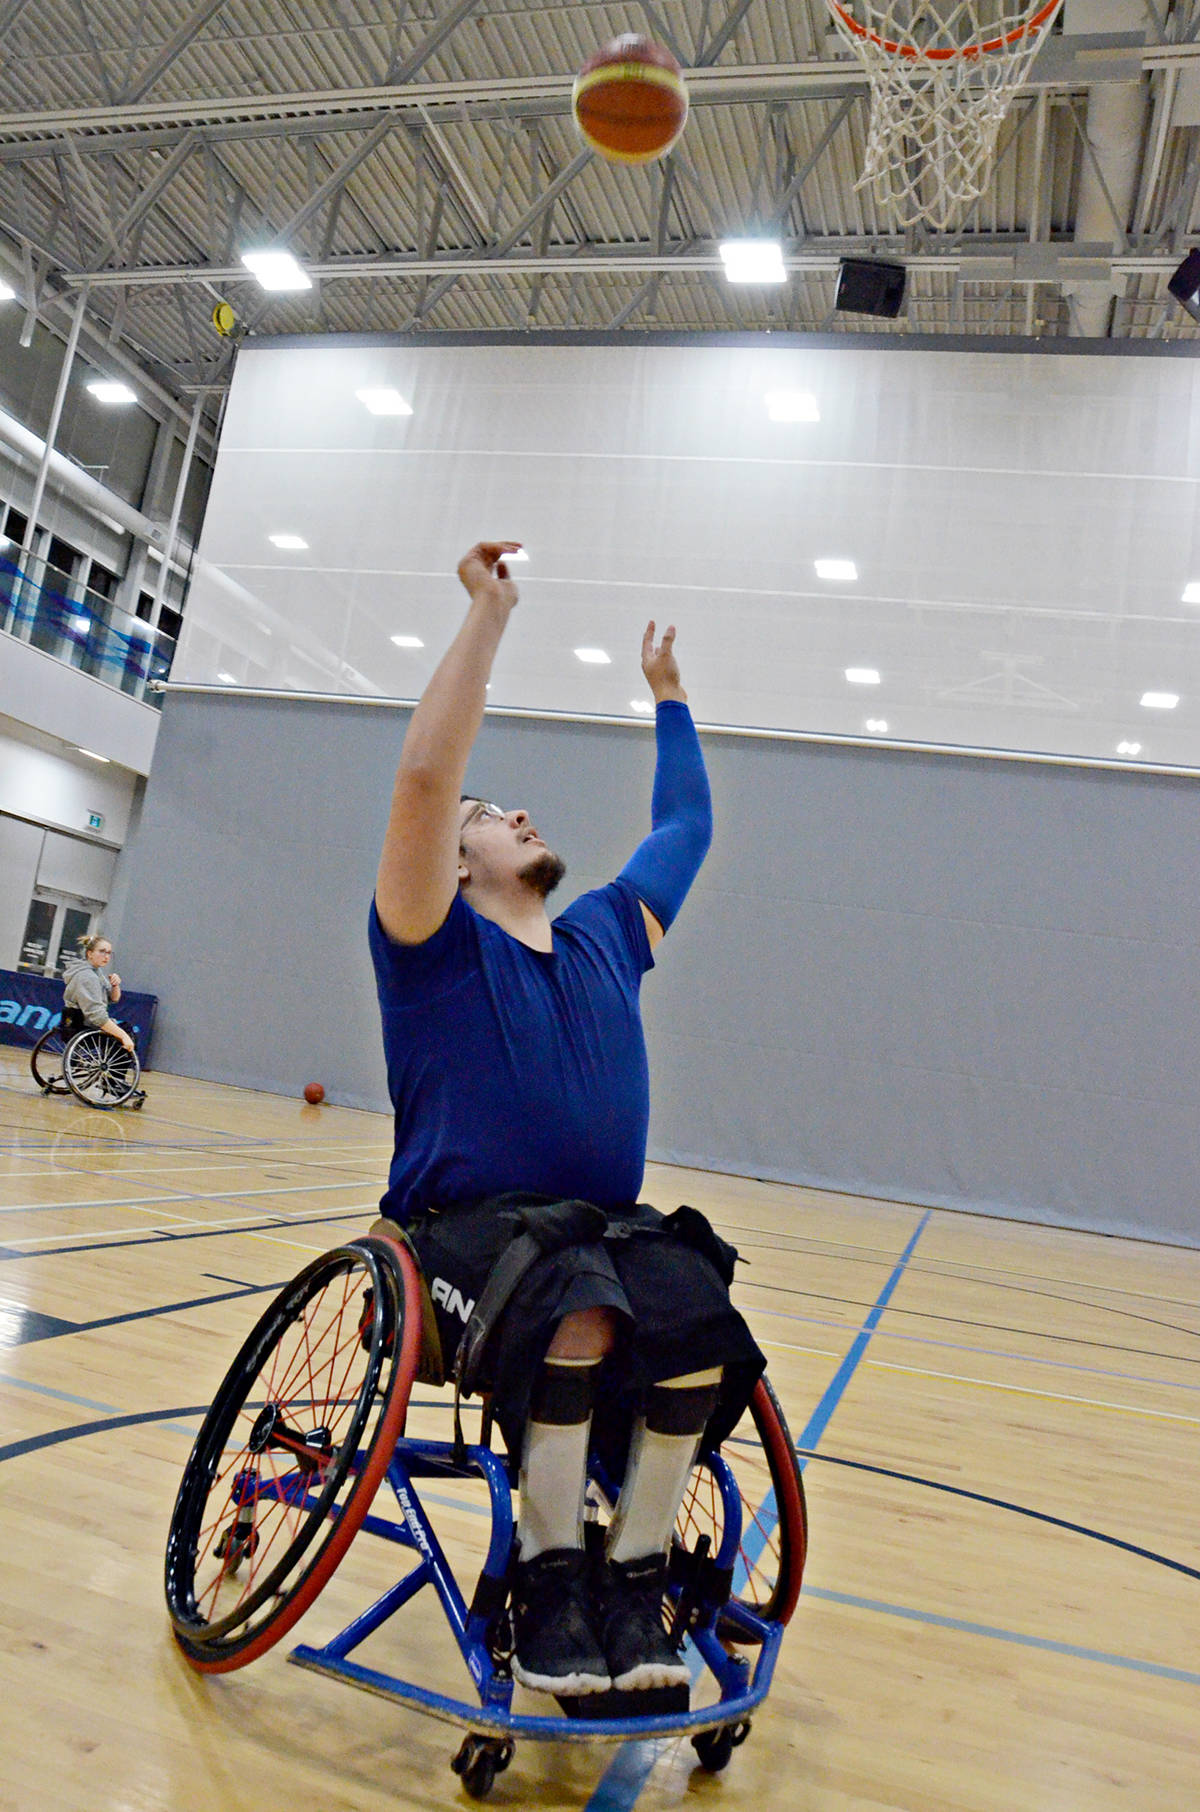 Ben Garrett was one of the local athletes who does wheelchair basketball at the Timms Community Centre. (Heather Colpitts/Langley Advance Times)